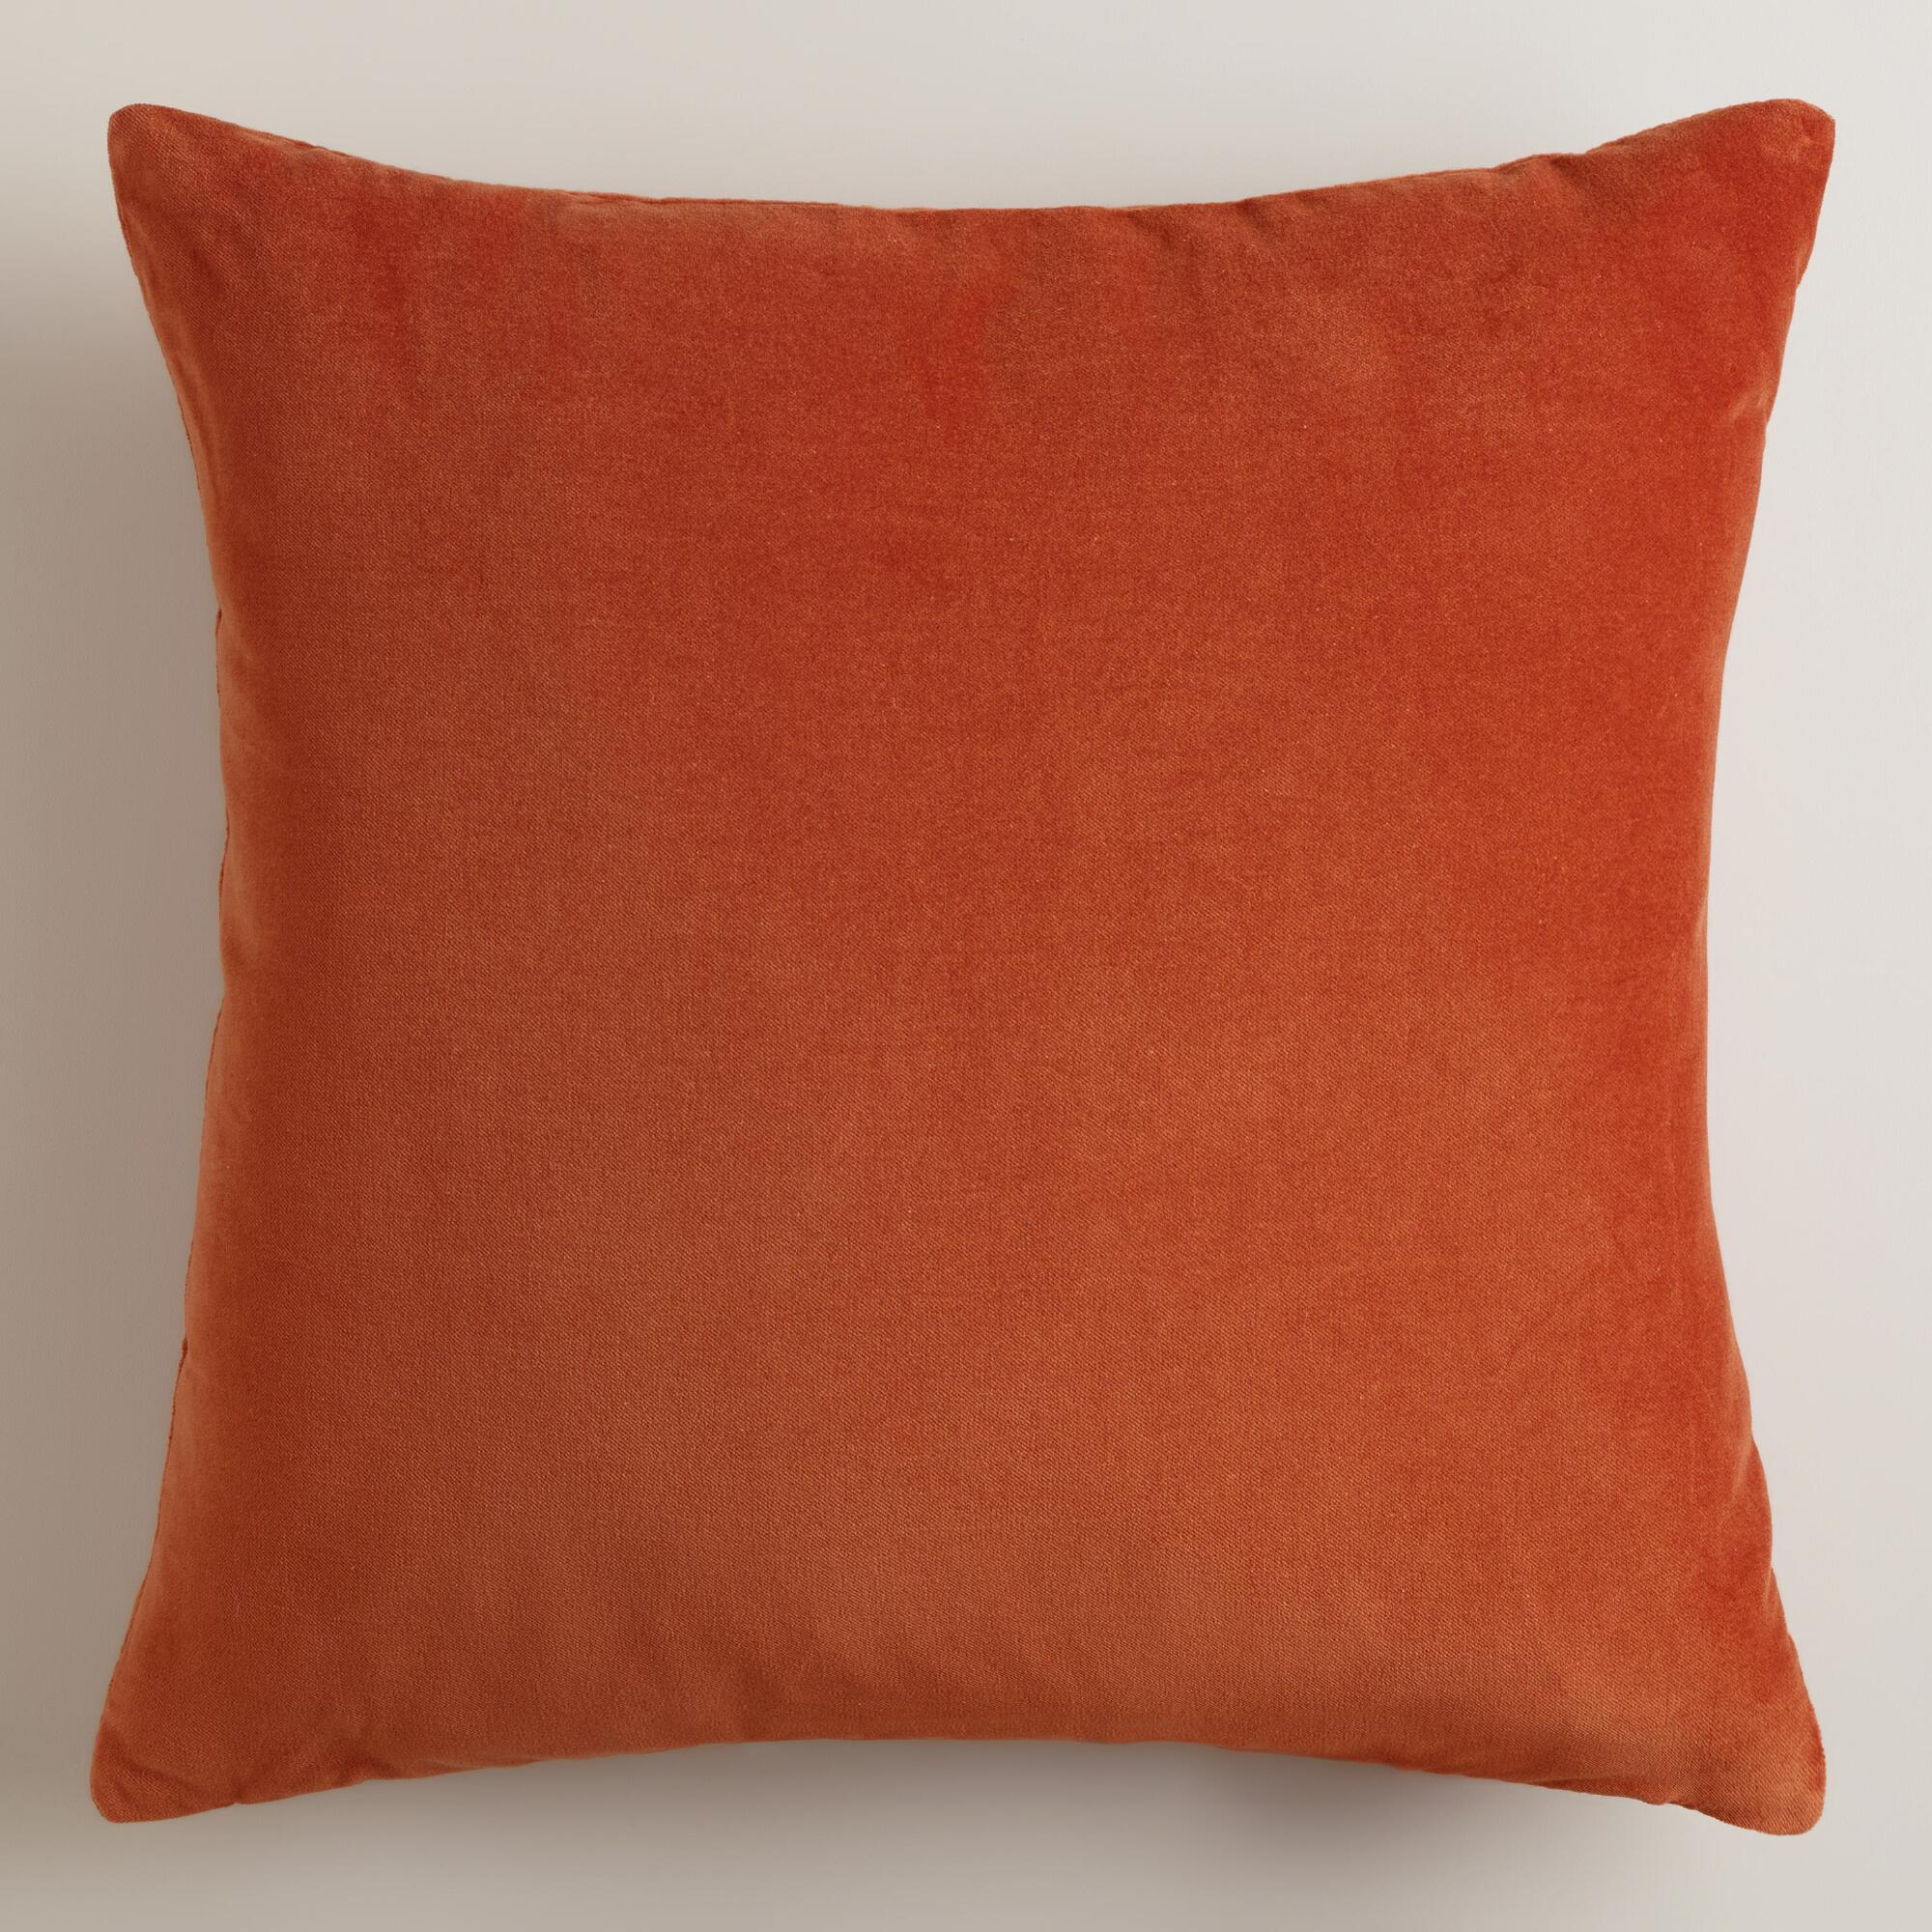 Throw Pillow Rust : Rooibos Rust Throw Pillows World Market